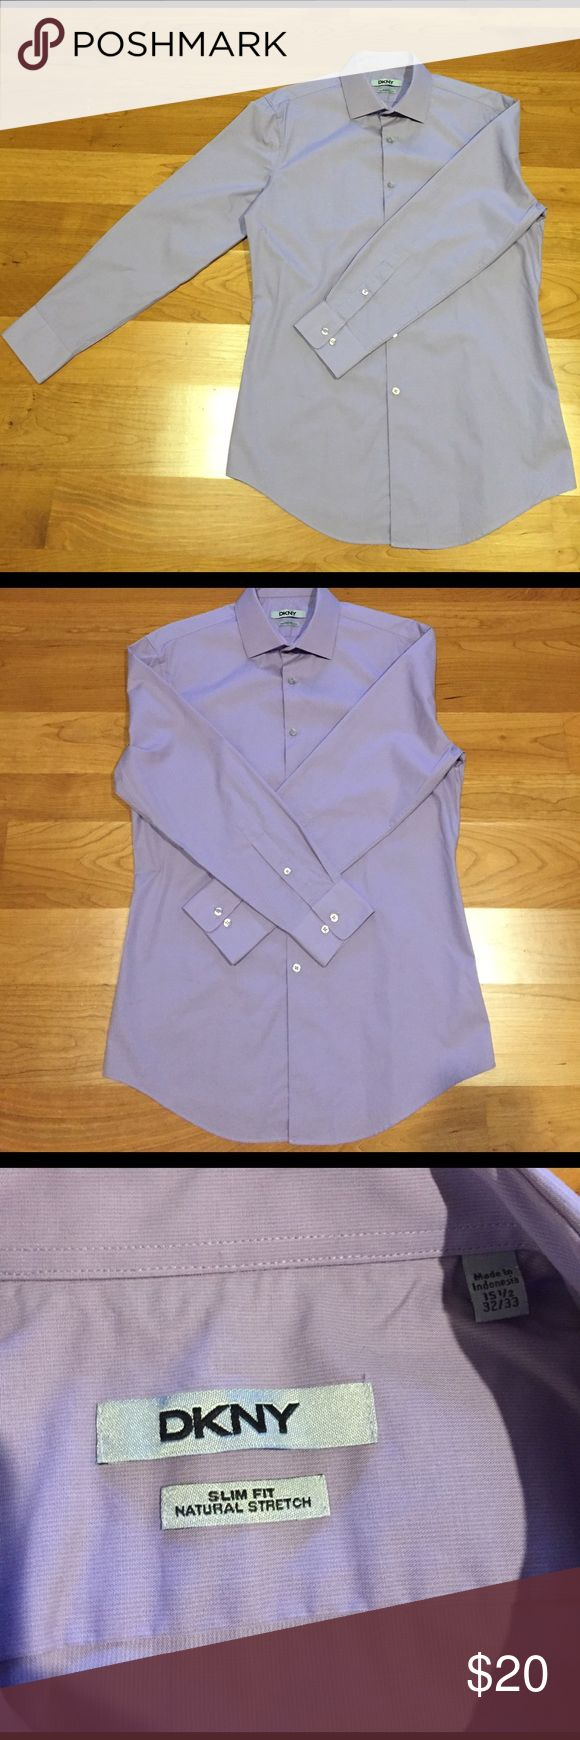 DKNY slim fit dress shirt Slim fit dress shirt from DKNY. Great condition - practically brand new! It's a lavender color with a 15 1/2 neck and 32/33 sleeve. Natural stretch, 100% cotton. DKNY Shirts Dress Shirts